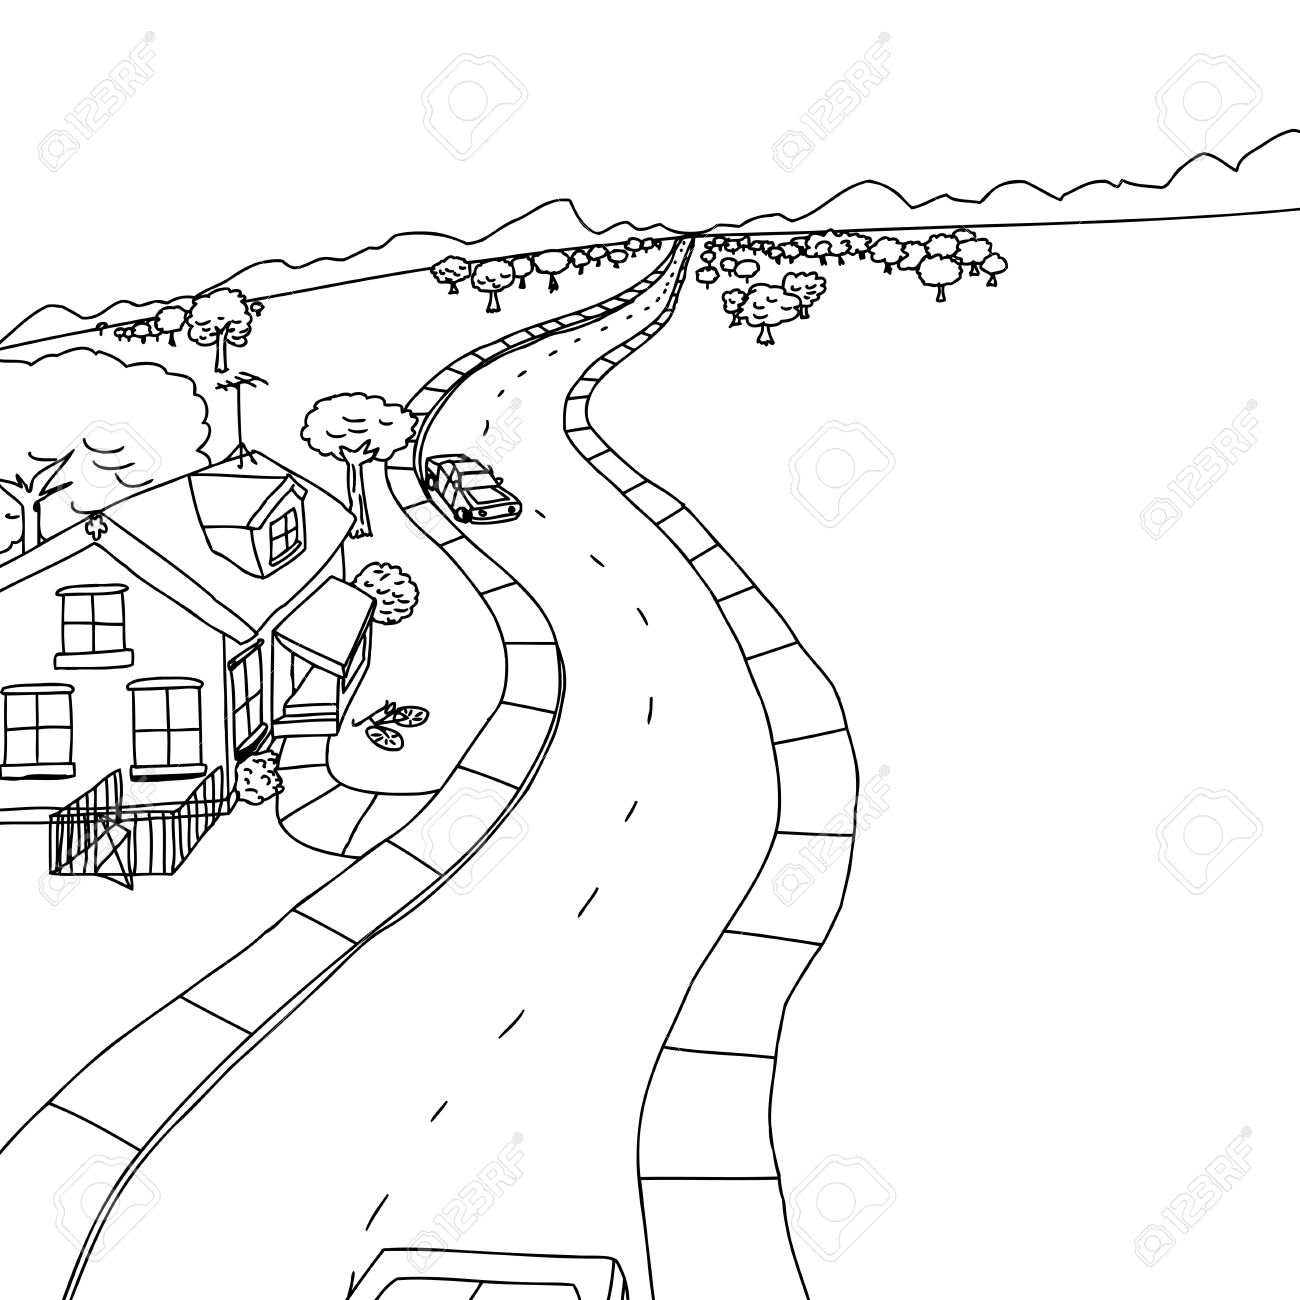 Outline Drawing Of House With Trees Along Road Royalty Free Cliparts ...